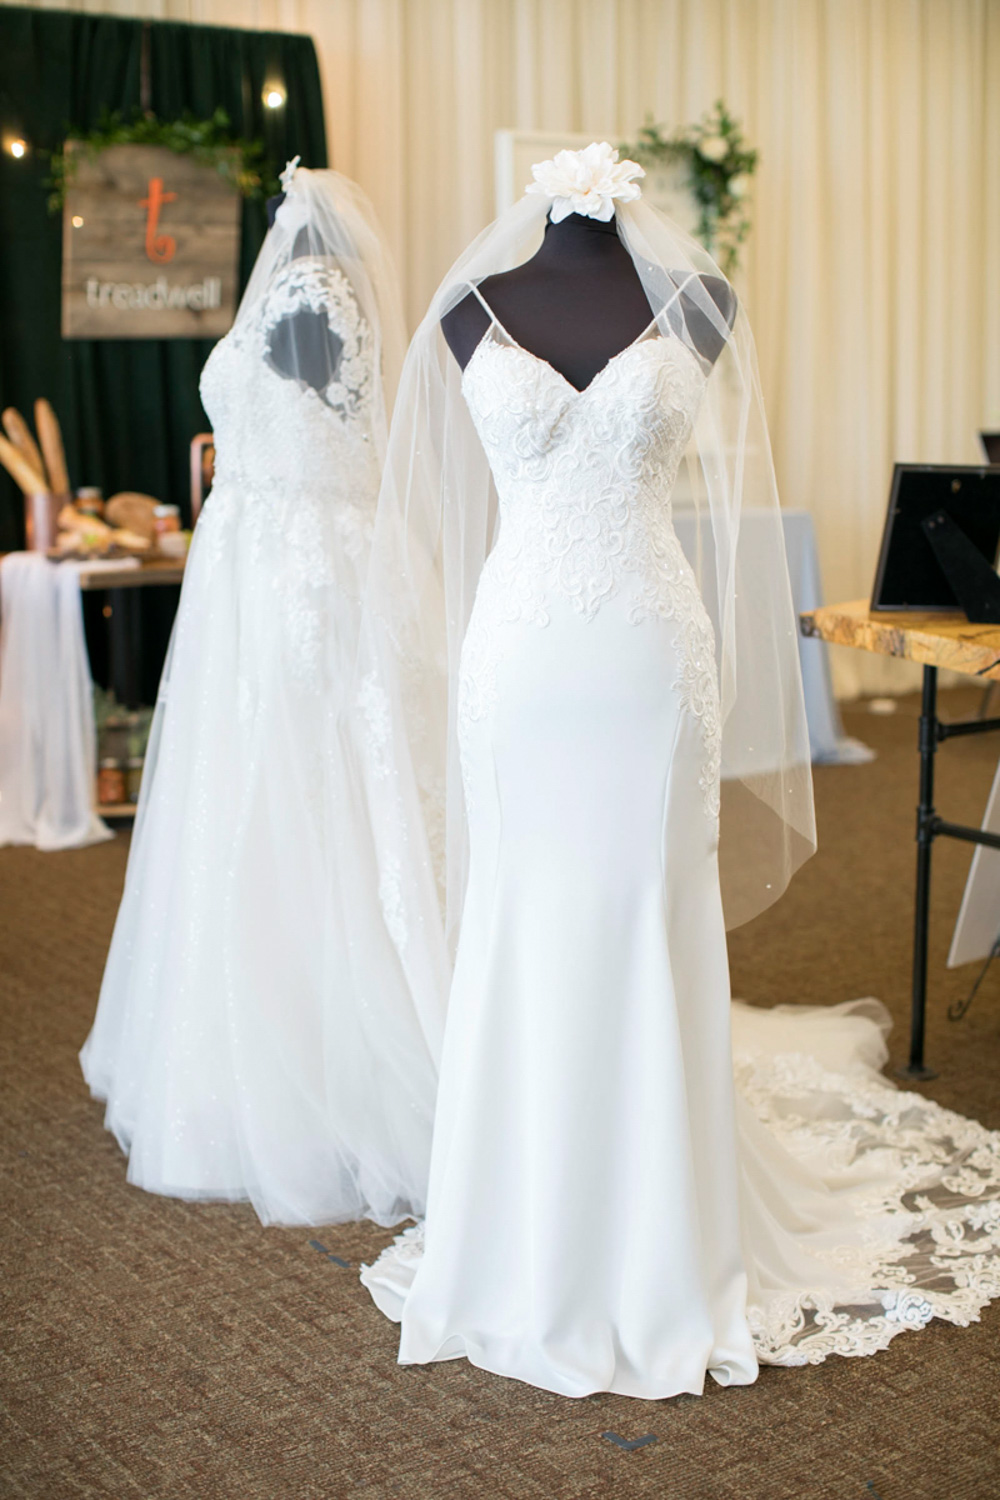 vineyard-bride-the-first-look-wedding-show-anniversary-niagara-toronto033.jpg